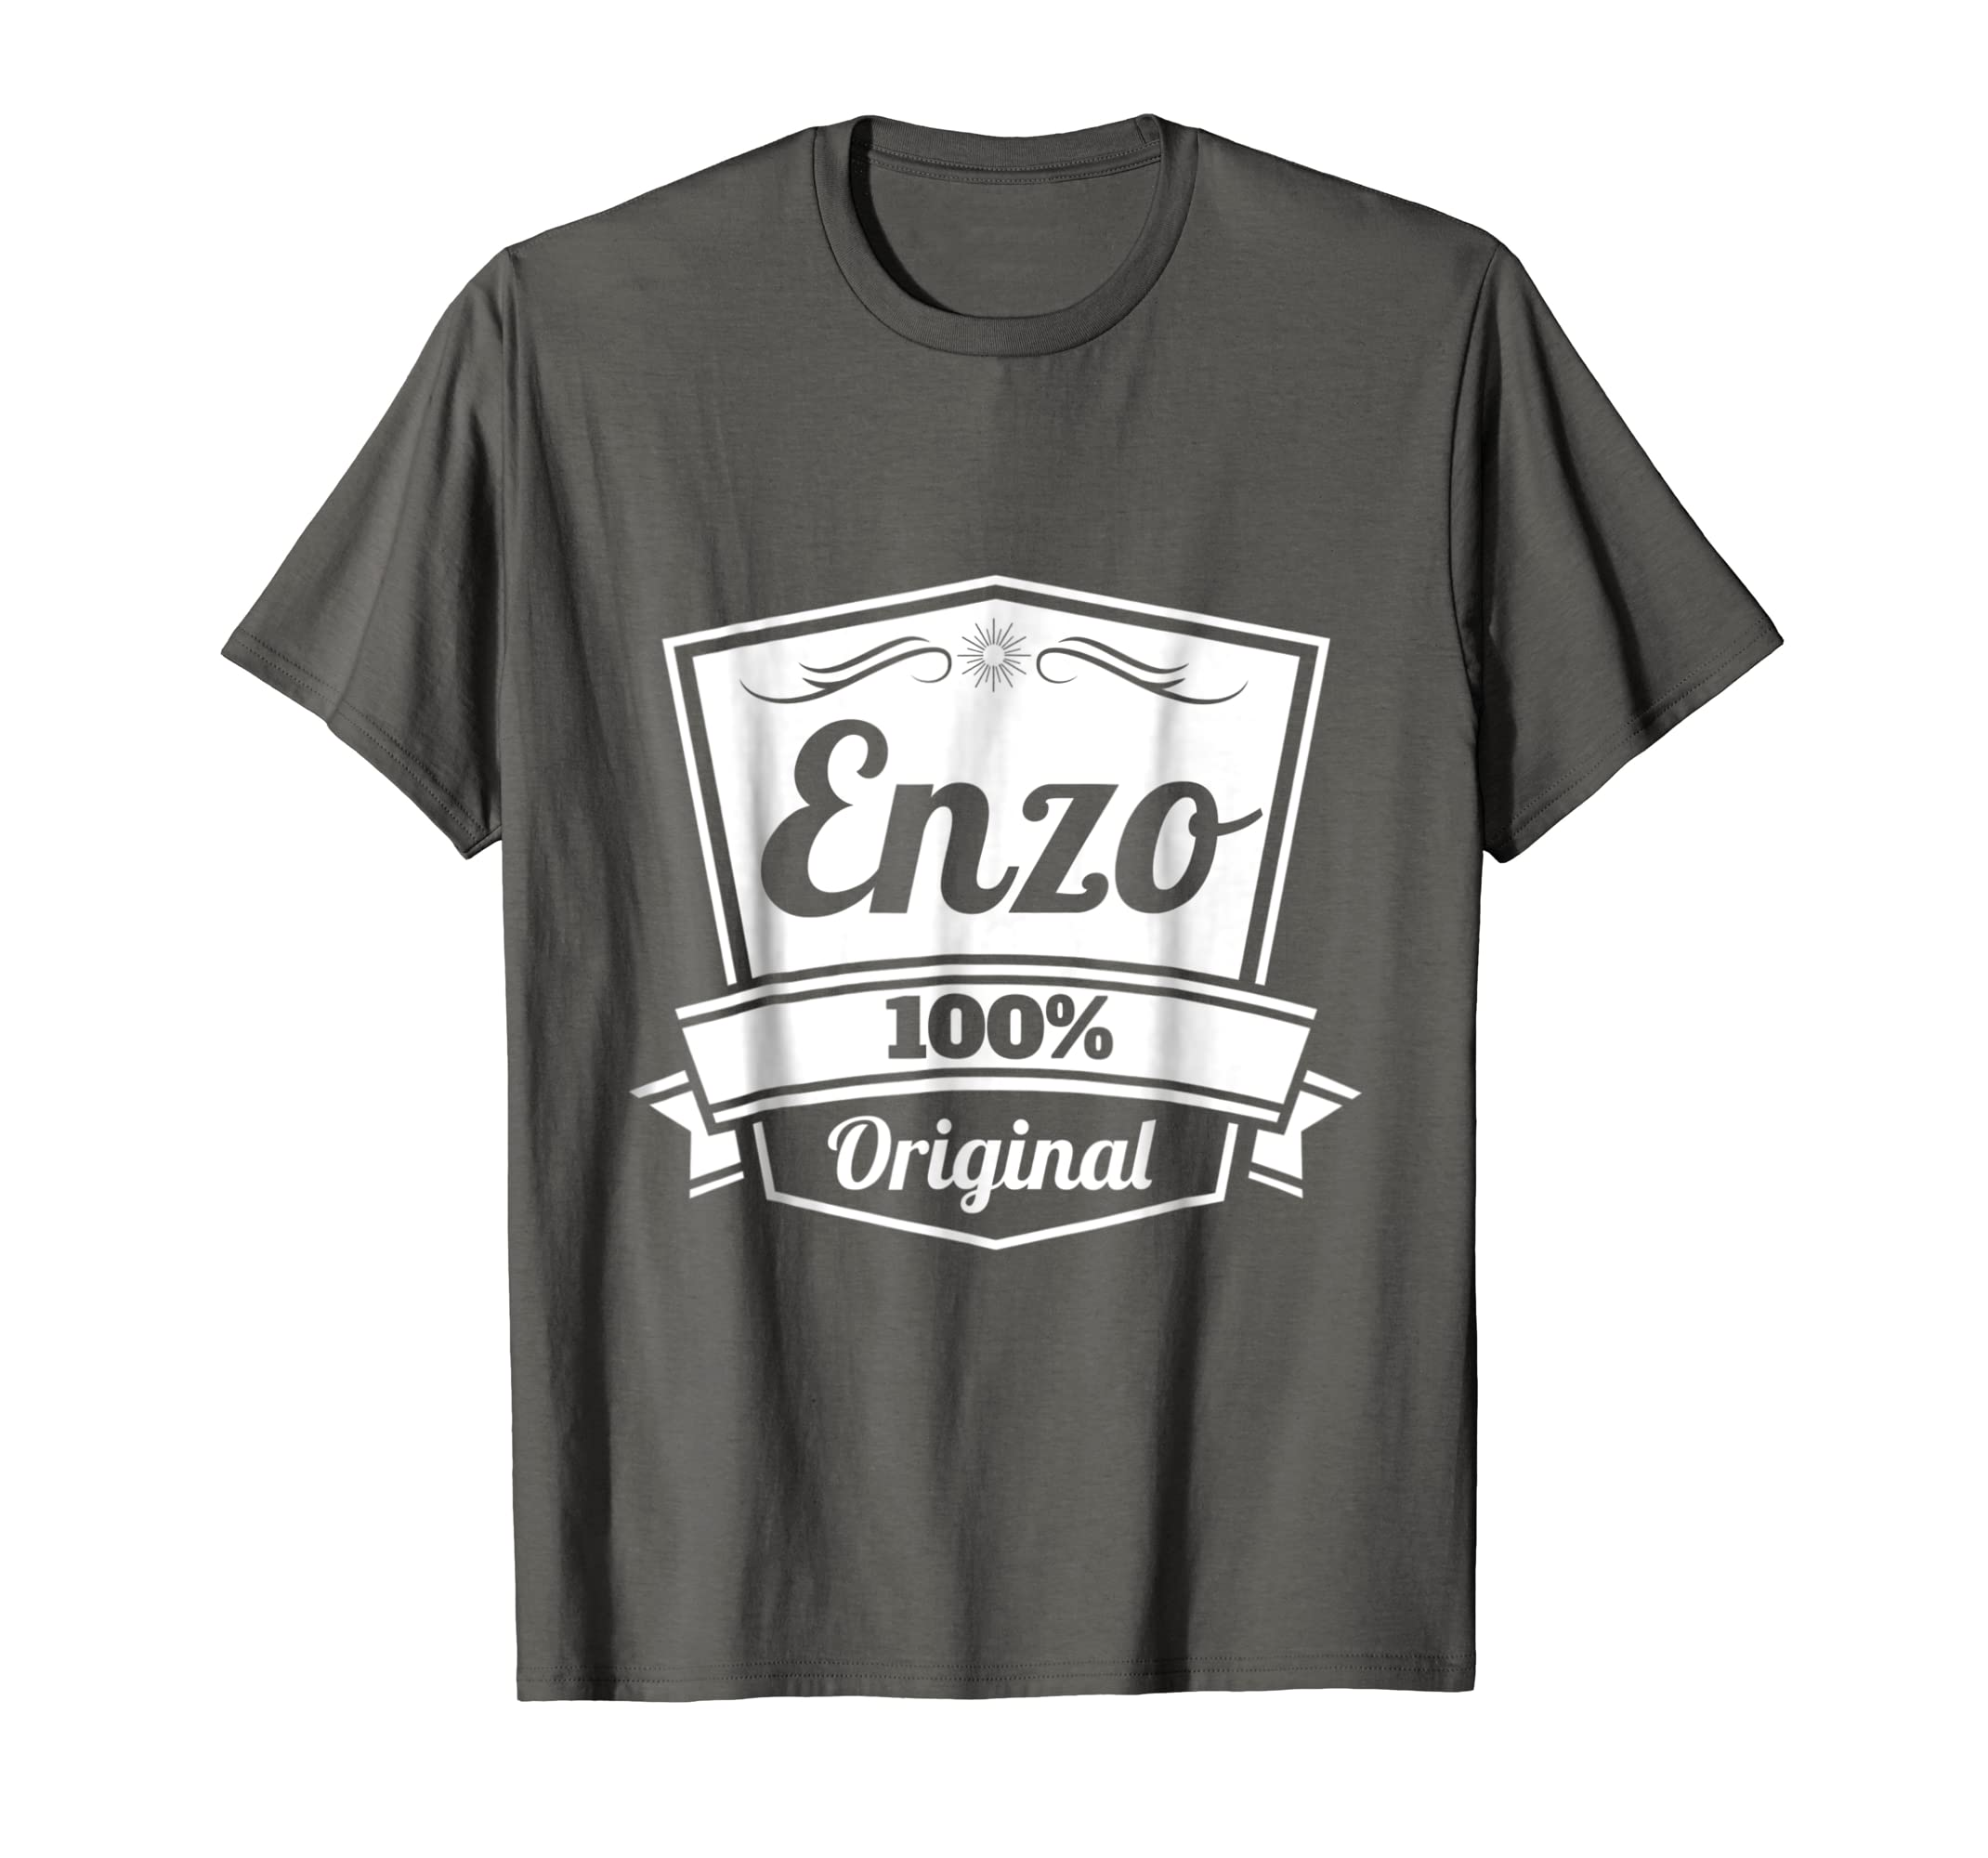 5b961c2d4e351 Amazon.com: Enzo Gift Shirt / Enzo Personalized Name Birthday TShirt ...